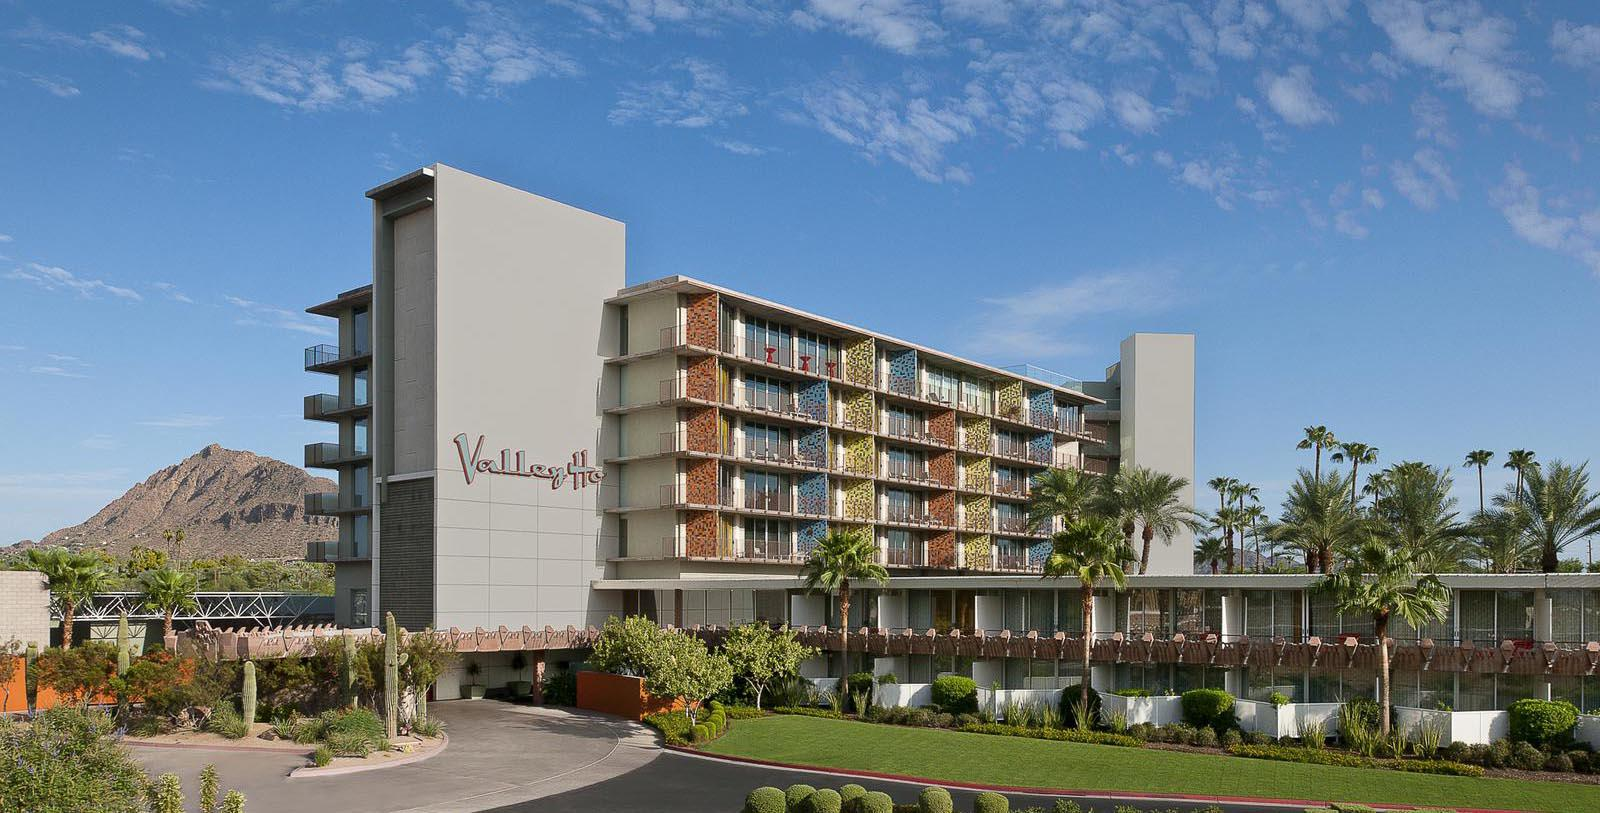 Image of Exterior, Hotel Valley Ho, Scottsdale, Arizona, 1956, Member of Historic Hotels of America, Special Offers, Discounted Rates, Families, Romantic Escape, Honeymoons, Anniversaries, Reunions